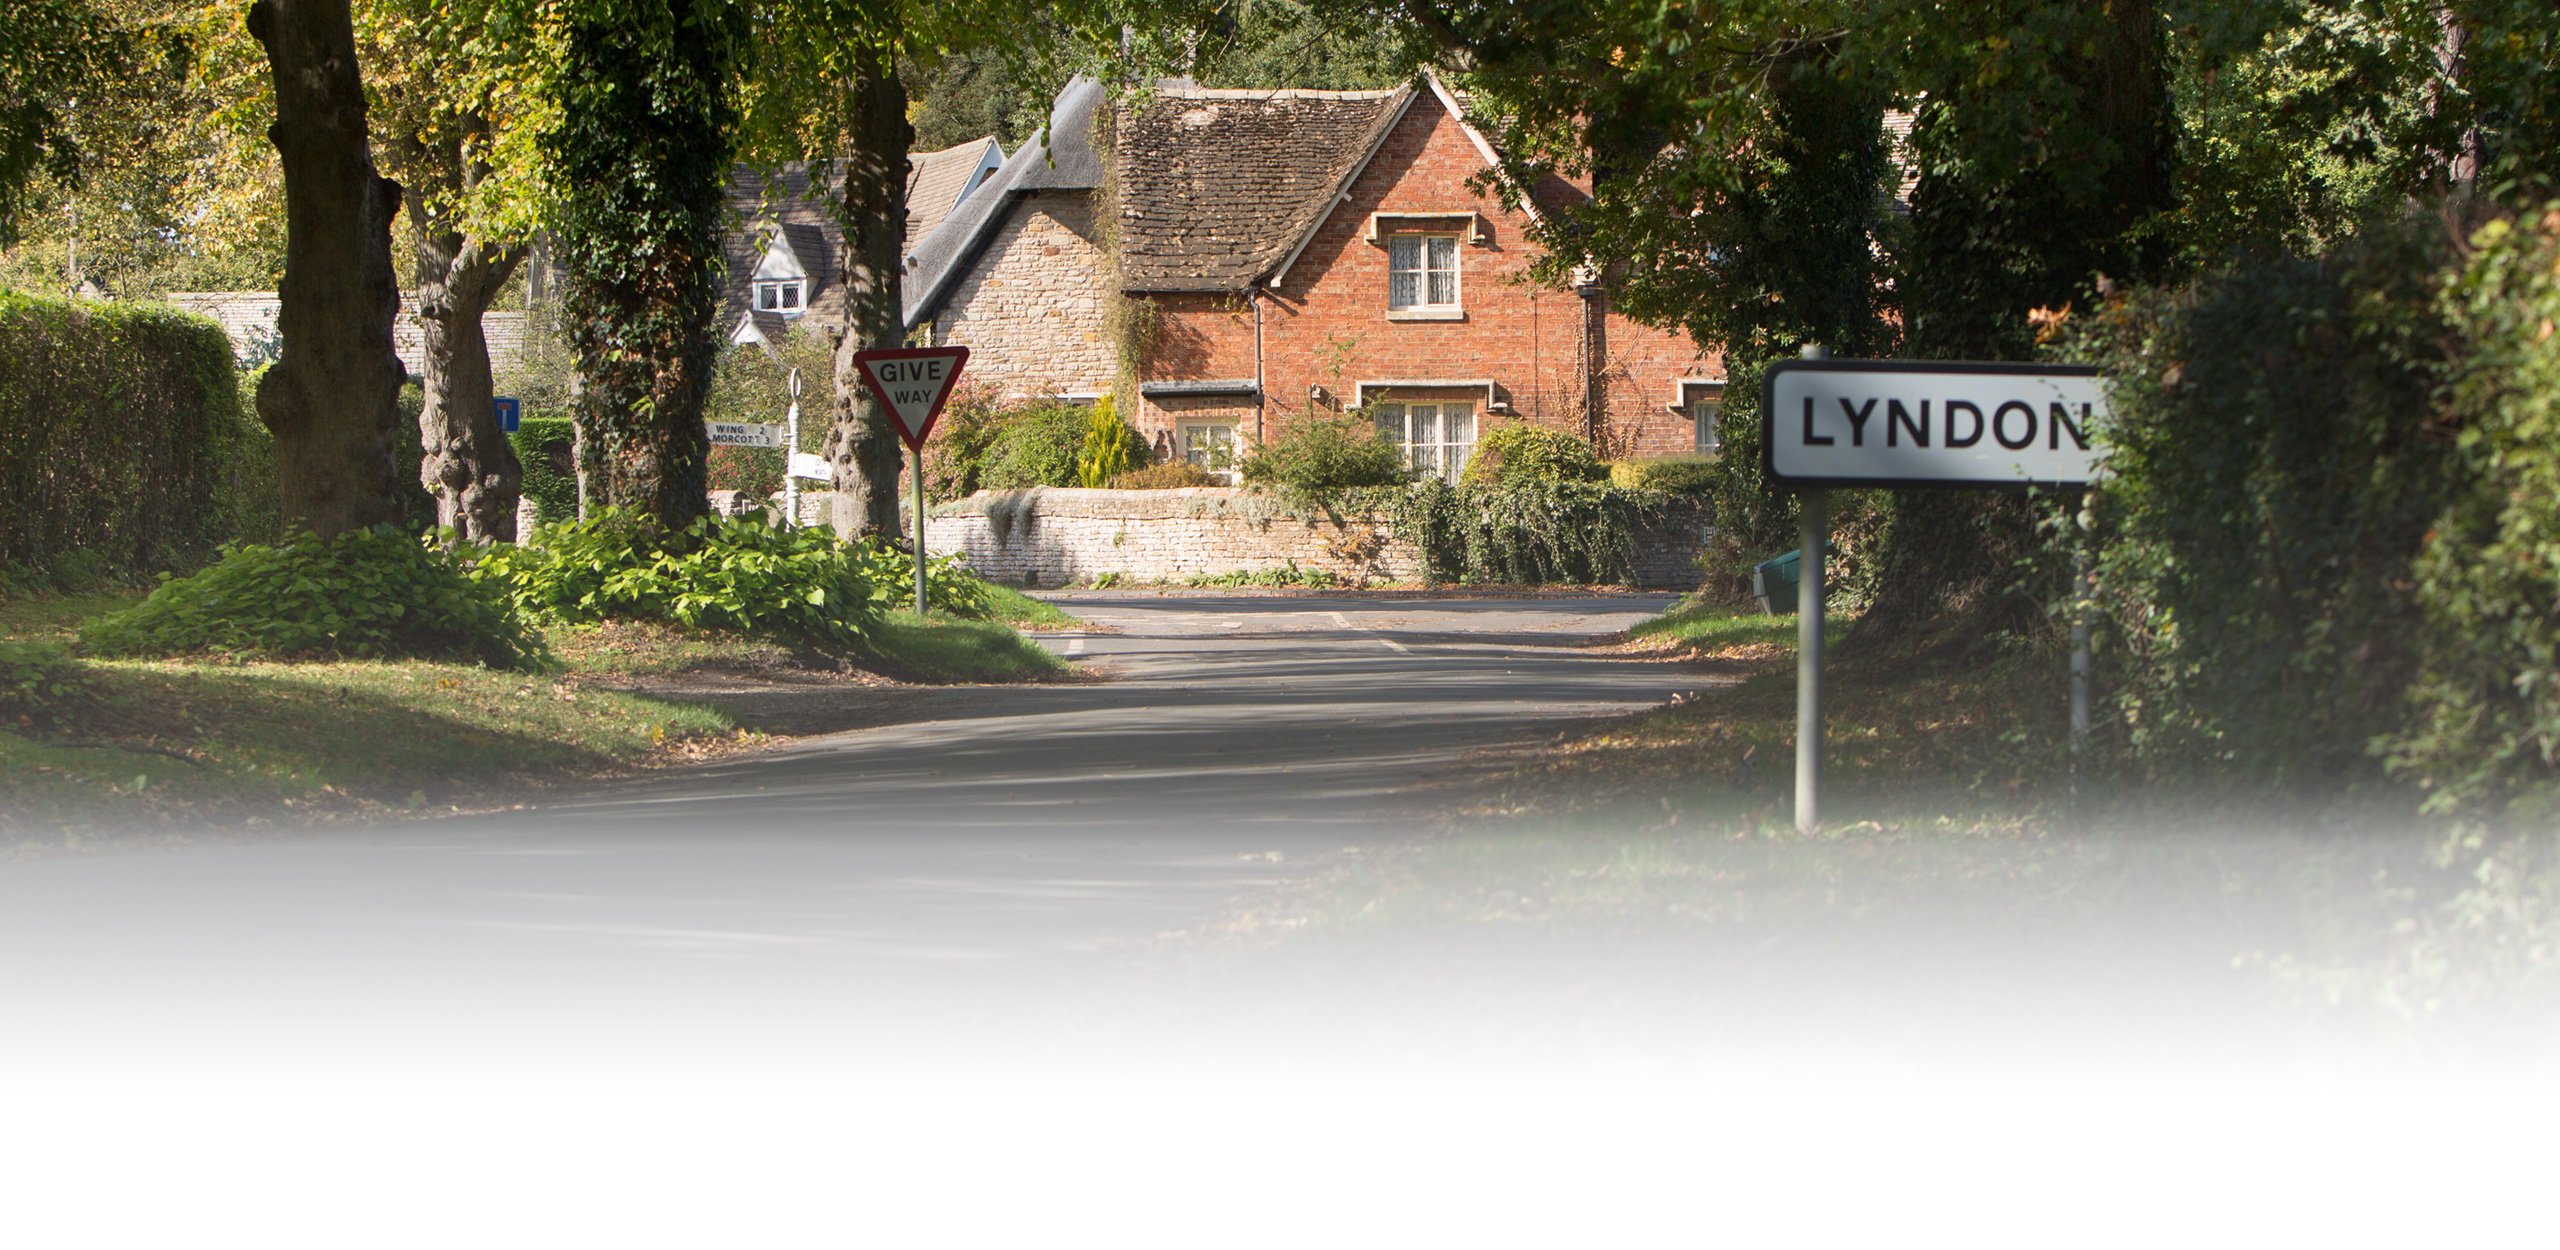 Lyndon Village Sign